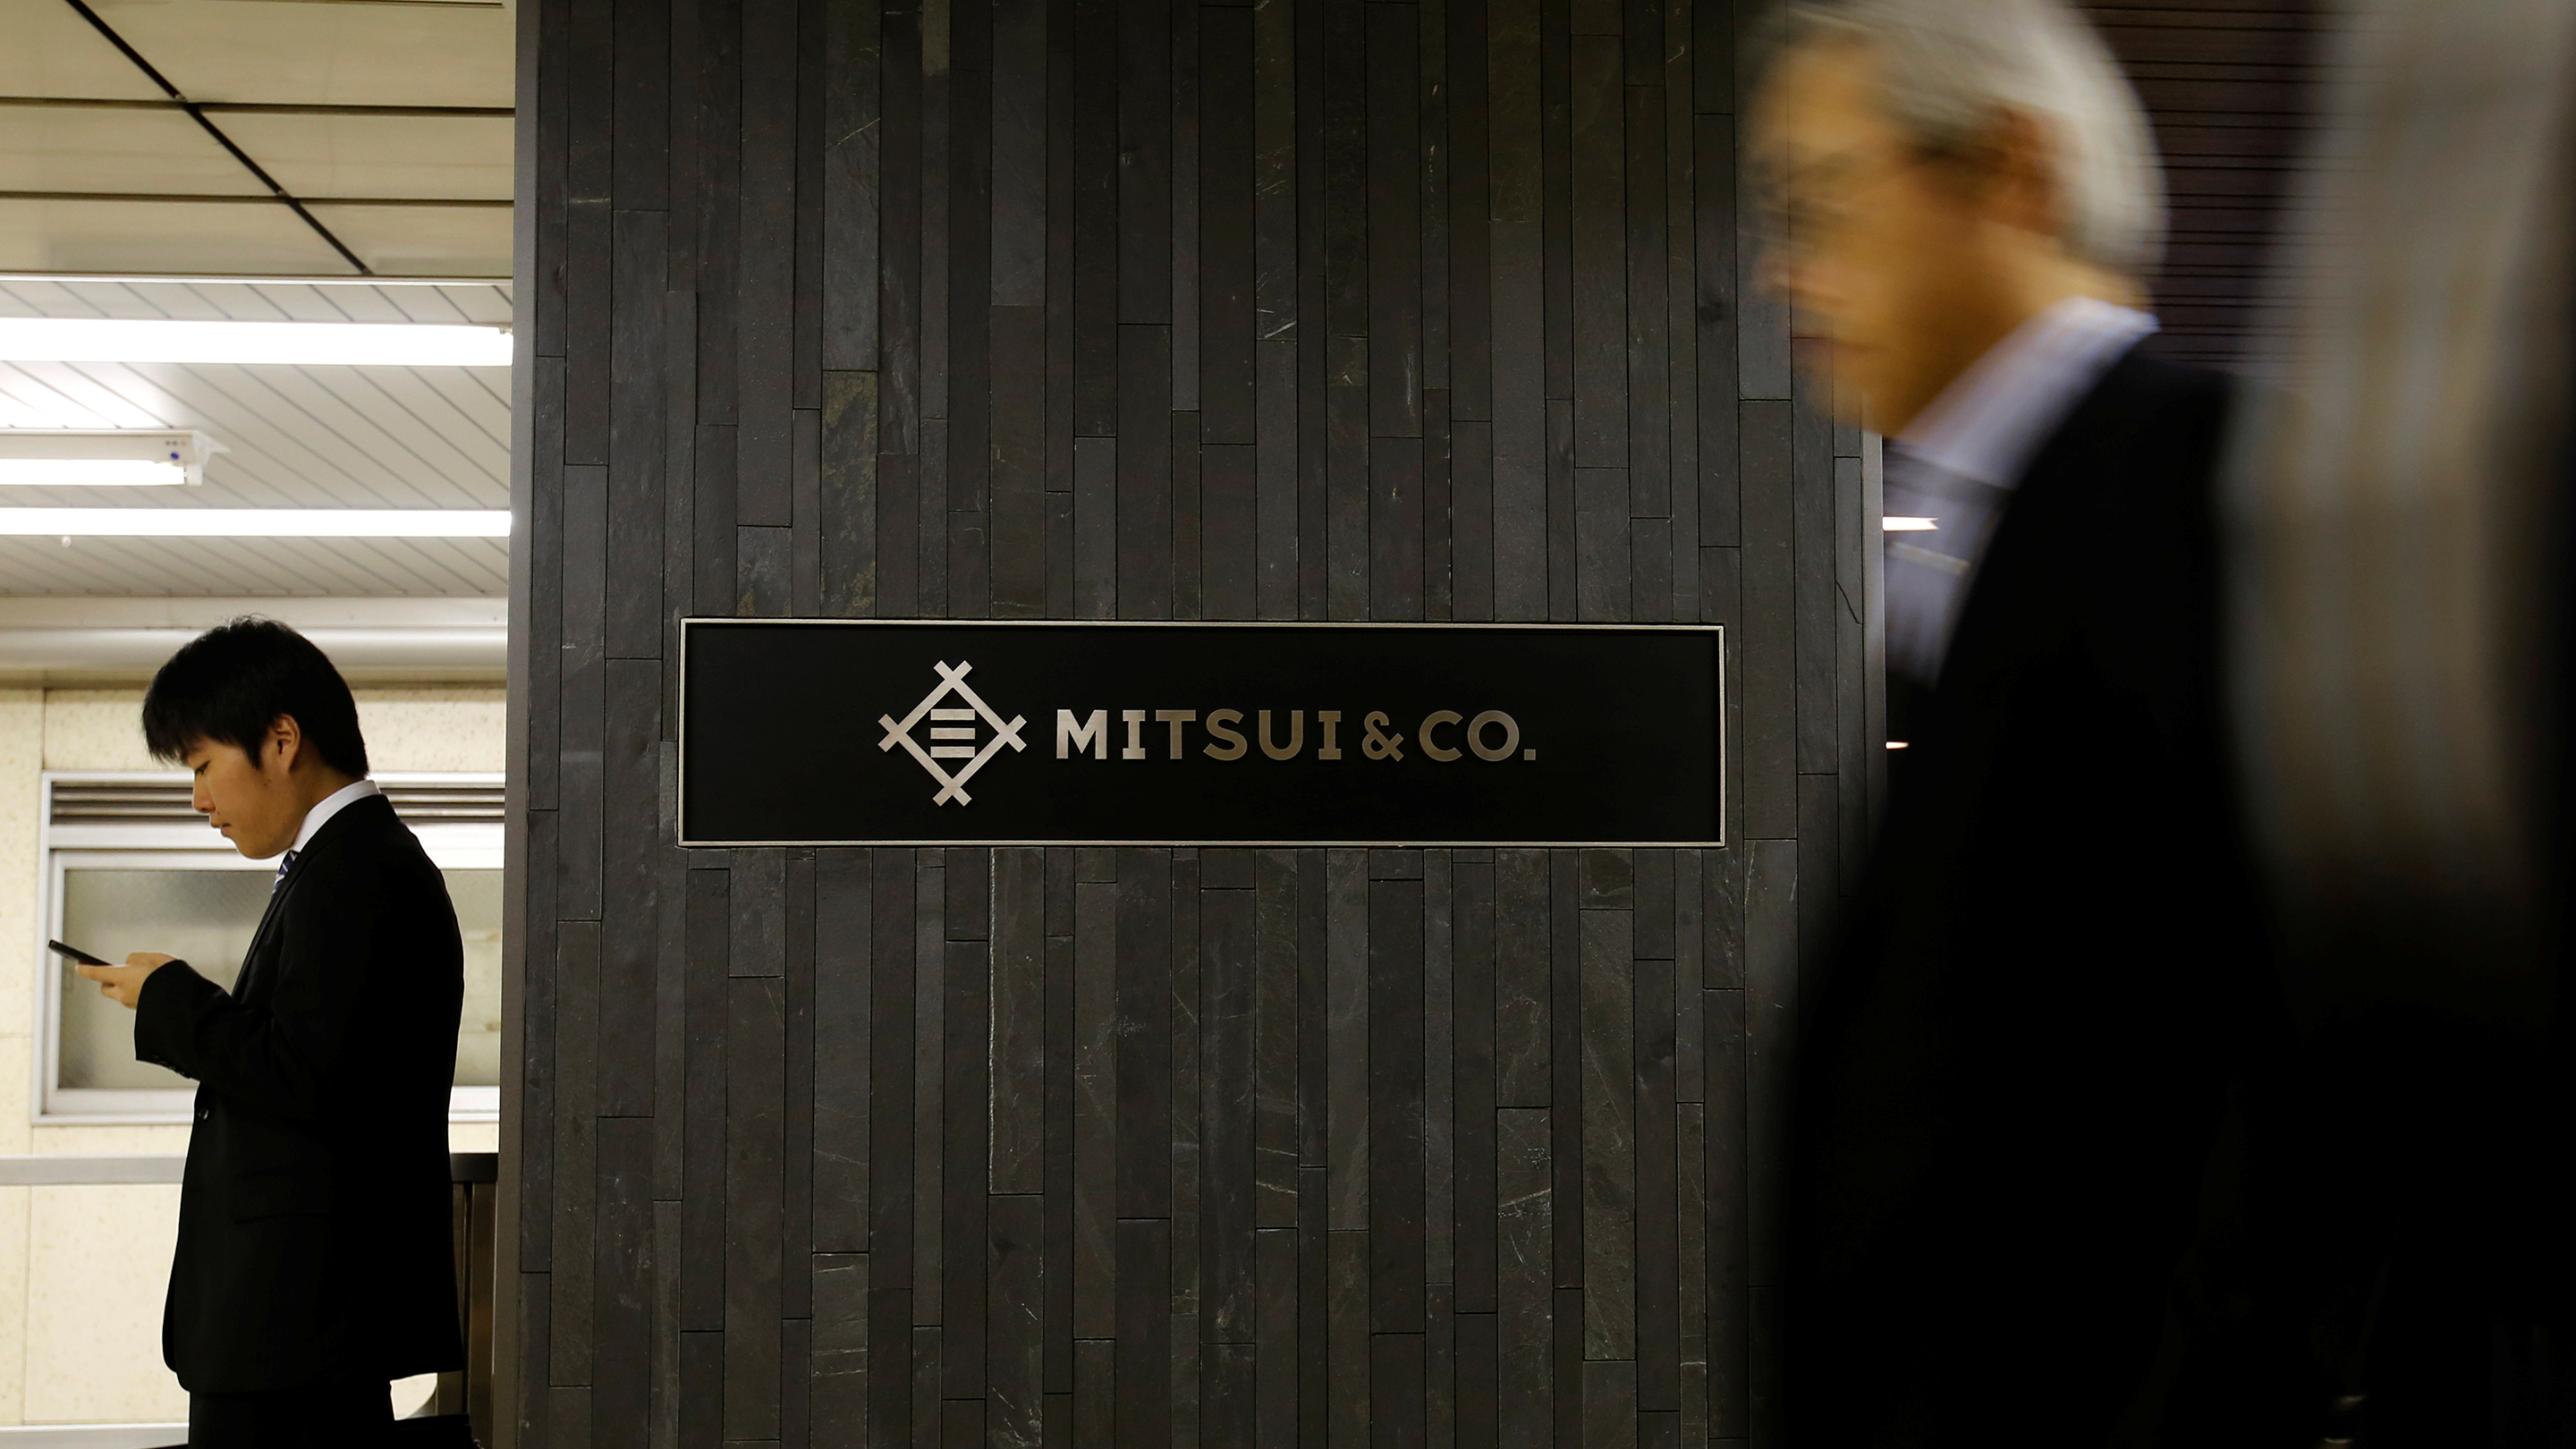 Men walk past the logo of Japanese trading company Mitsui & Co. in Tokyo